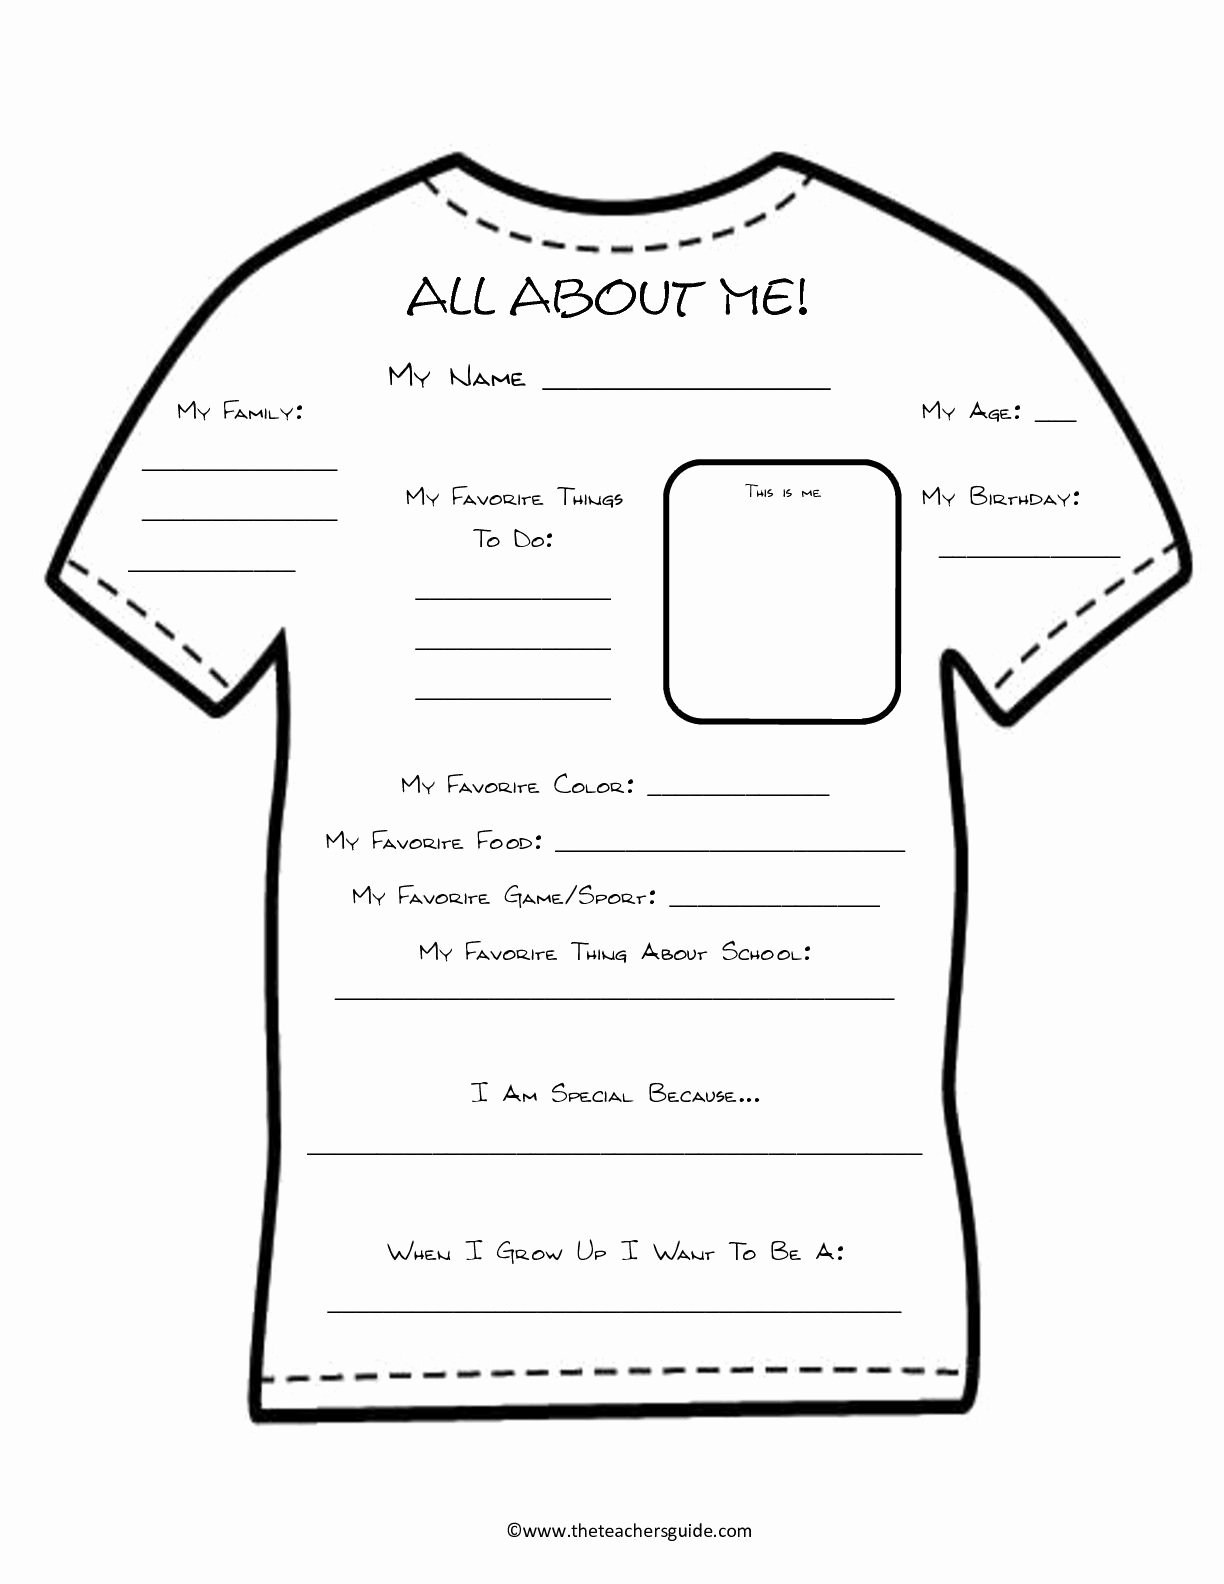 All About Me Worksheet Lovely About Me Worksheet Teach Me Pinterest